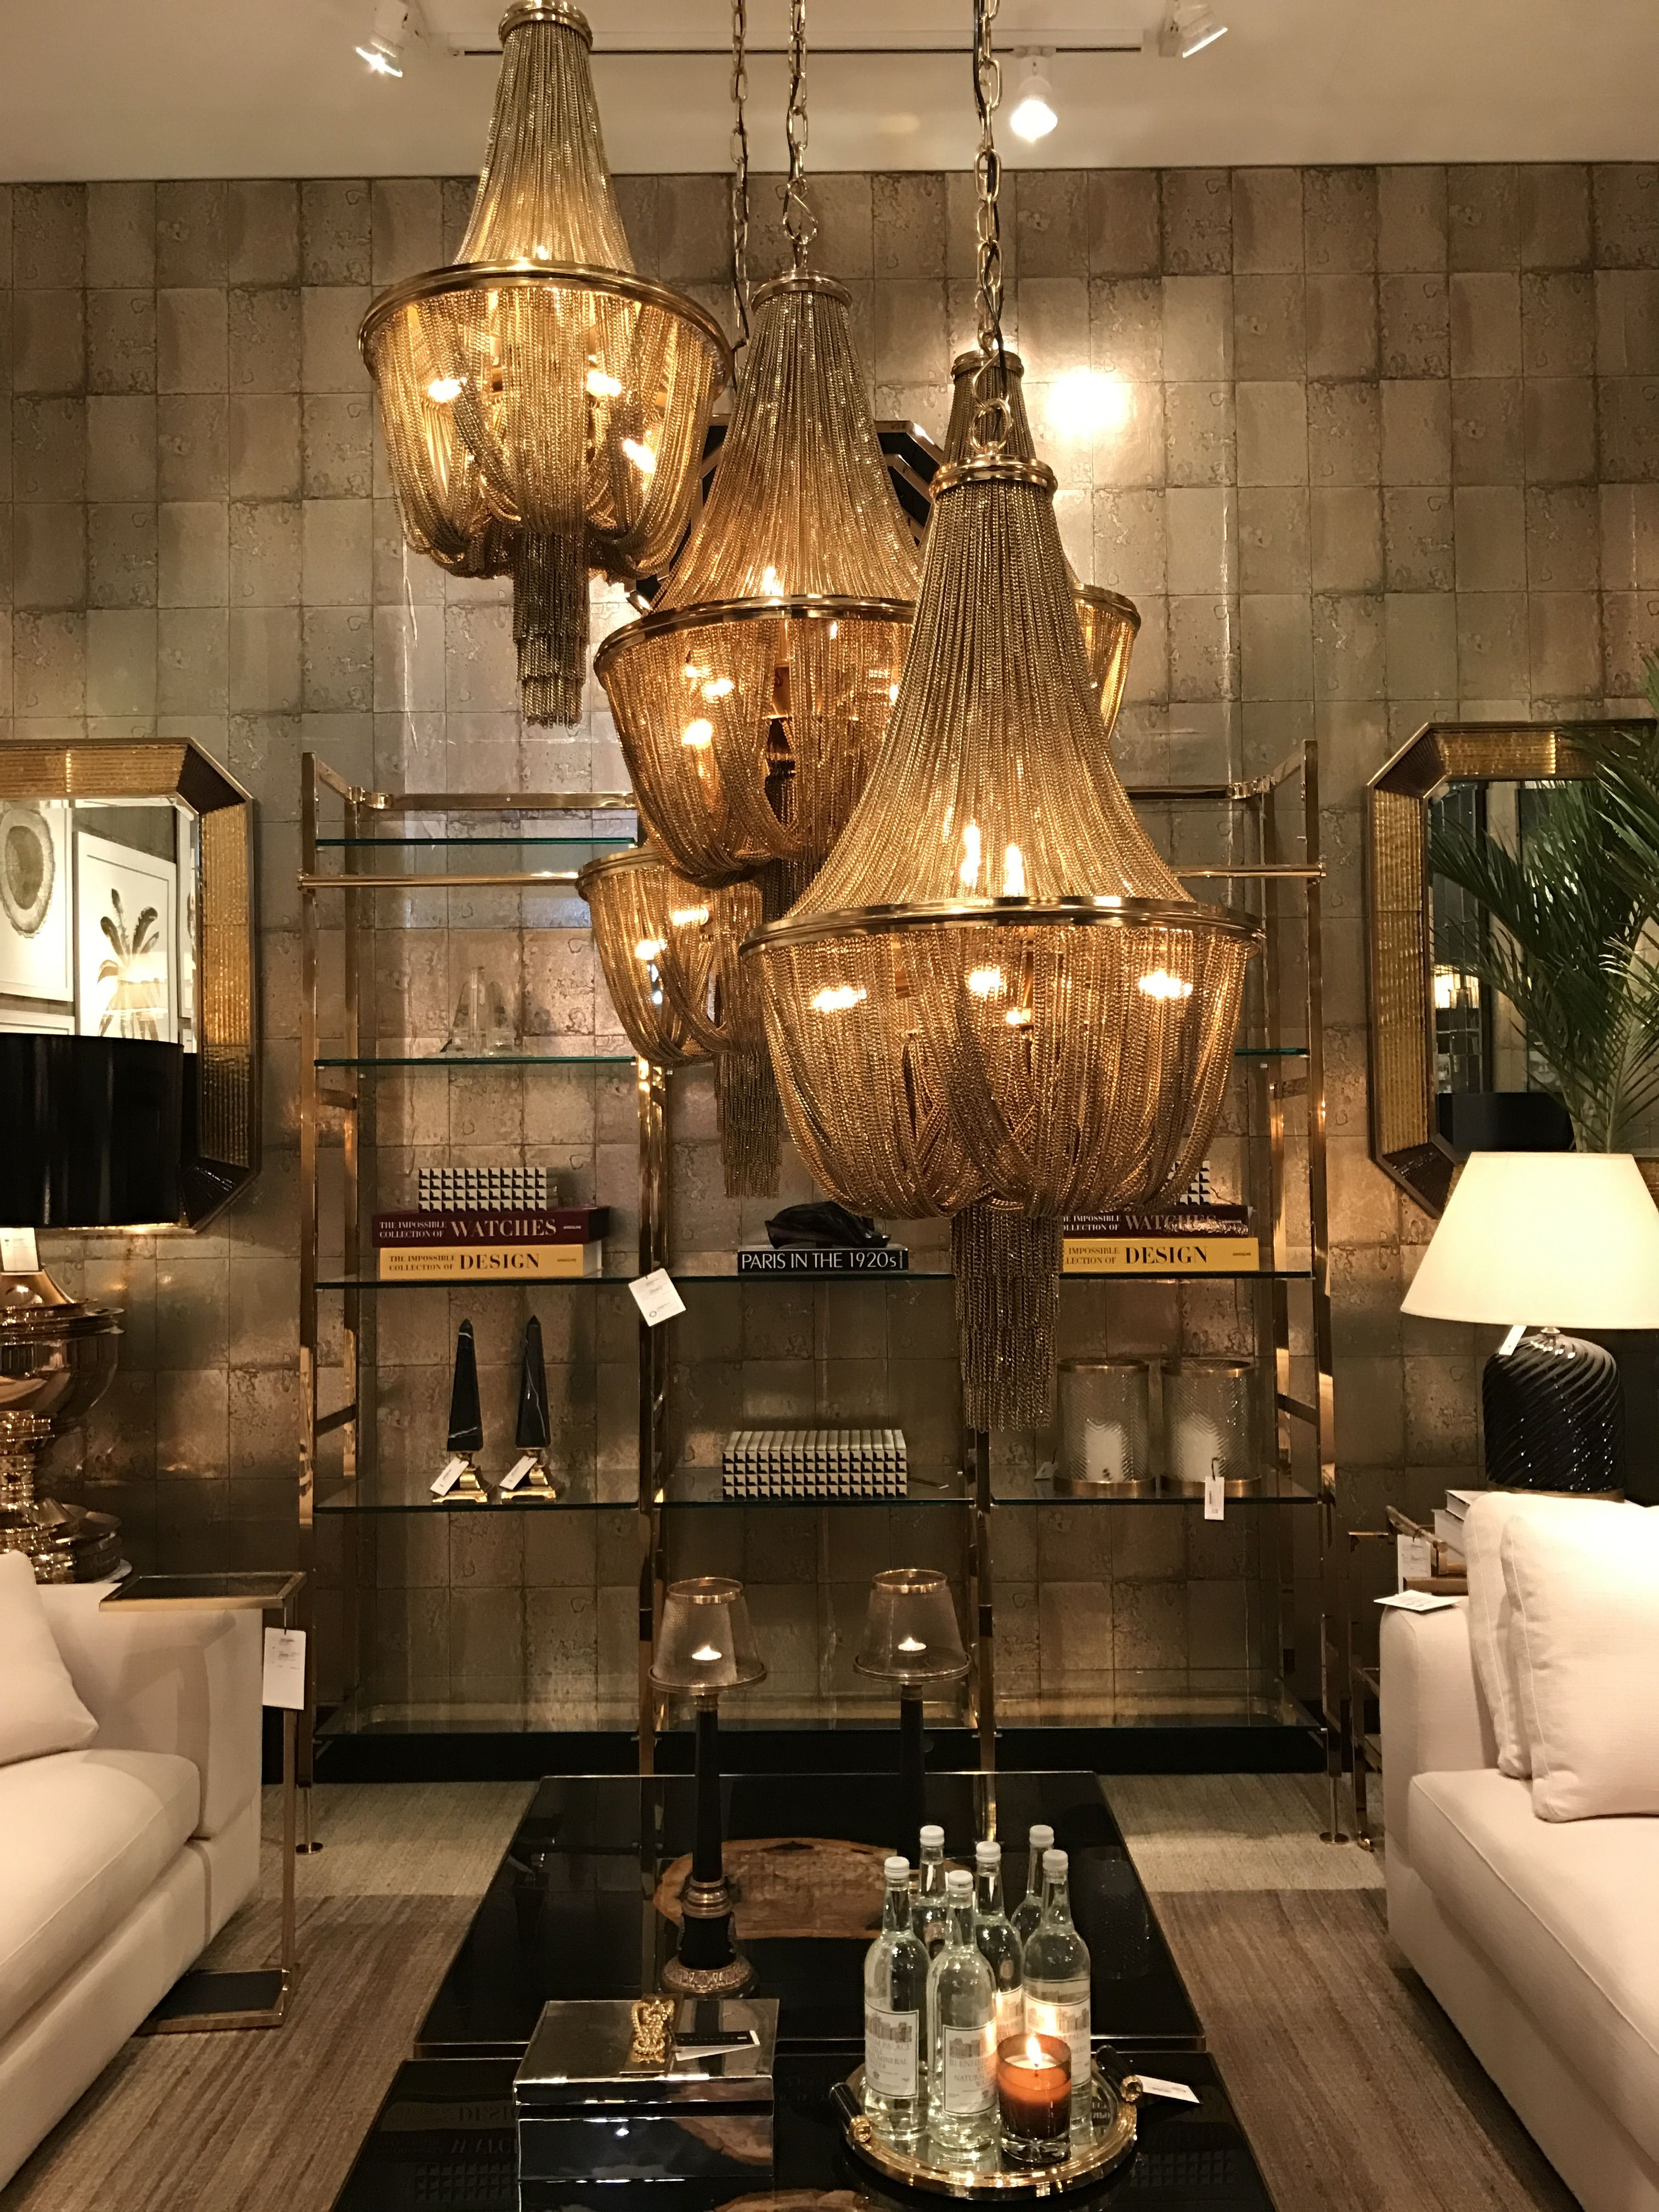 We loved this eichholtz stand at maison et objet this year